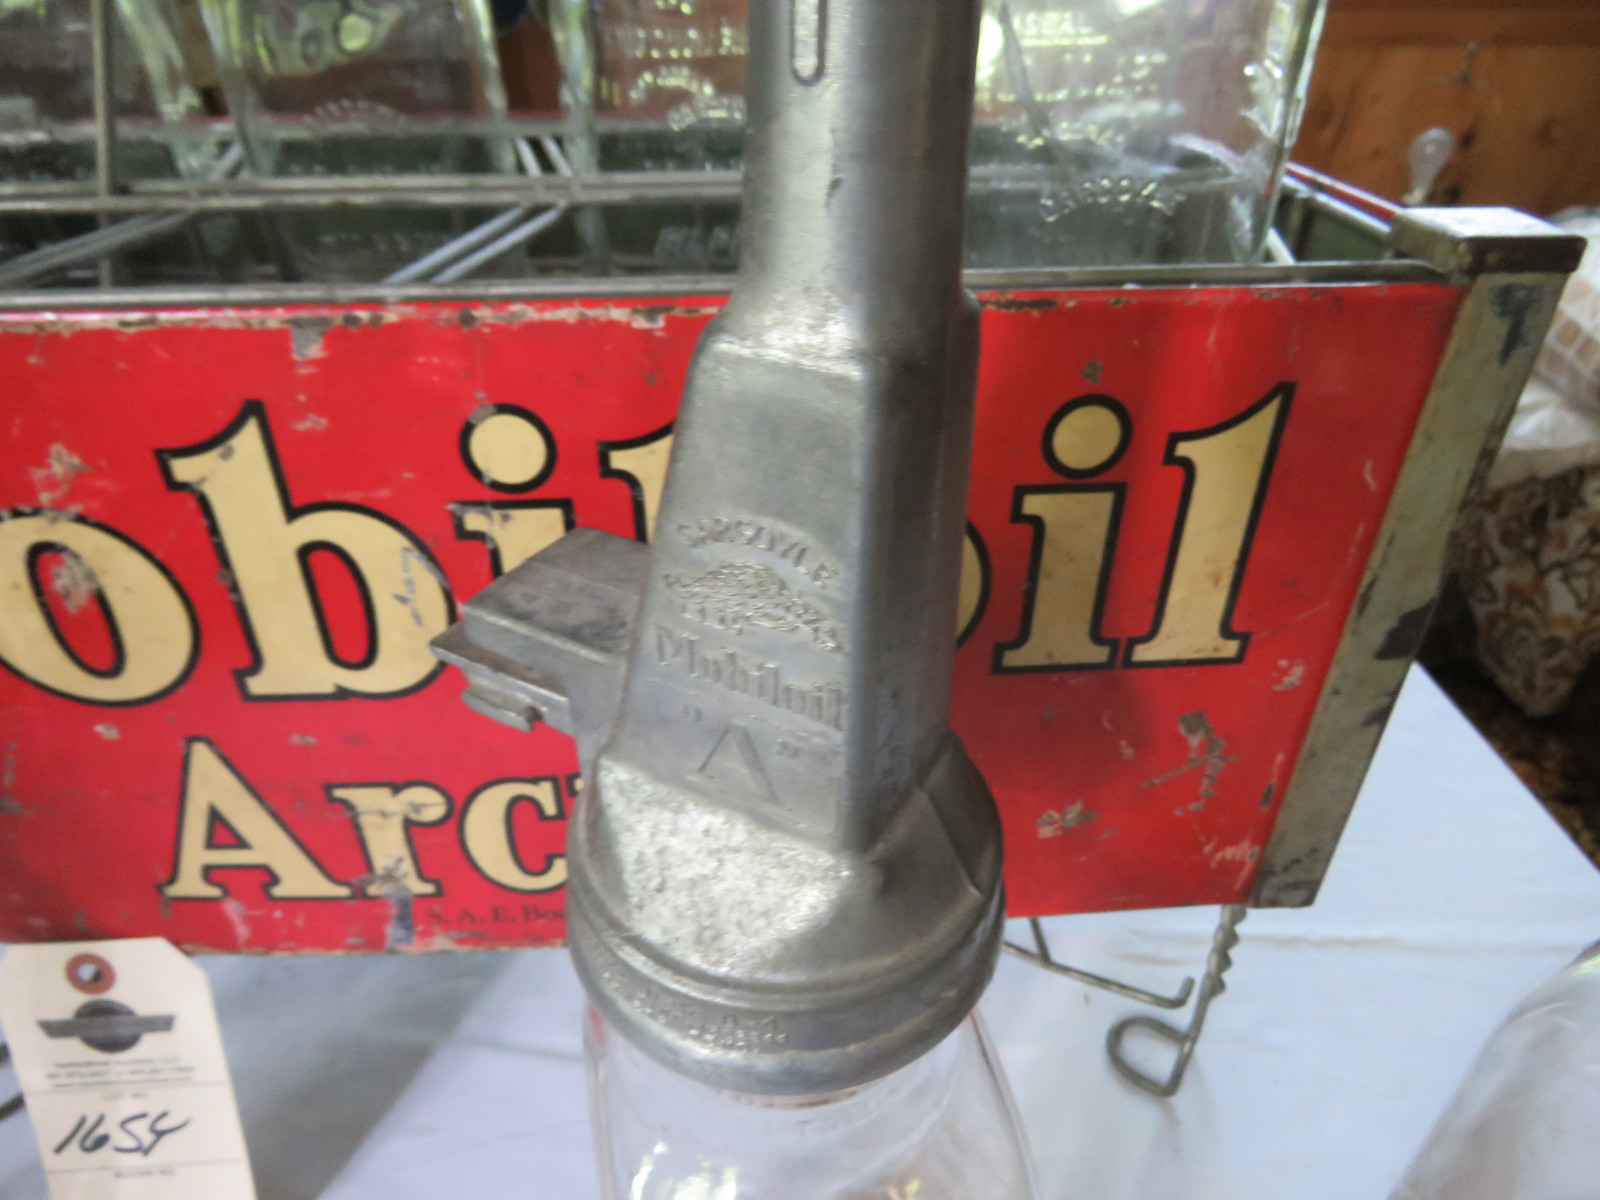 Rare Glass Mobil Oil Bottles in Rack with MobilOil Advertising - Image 6